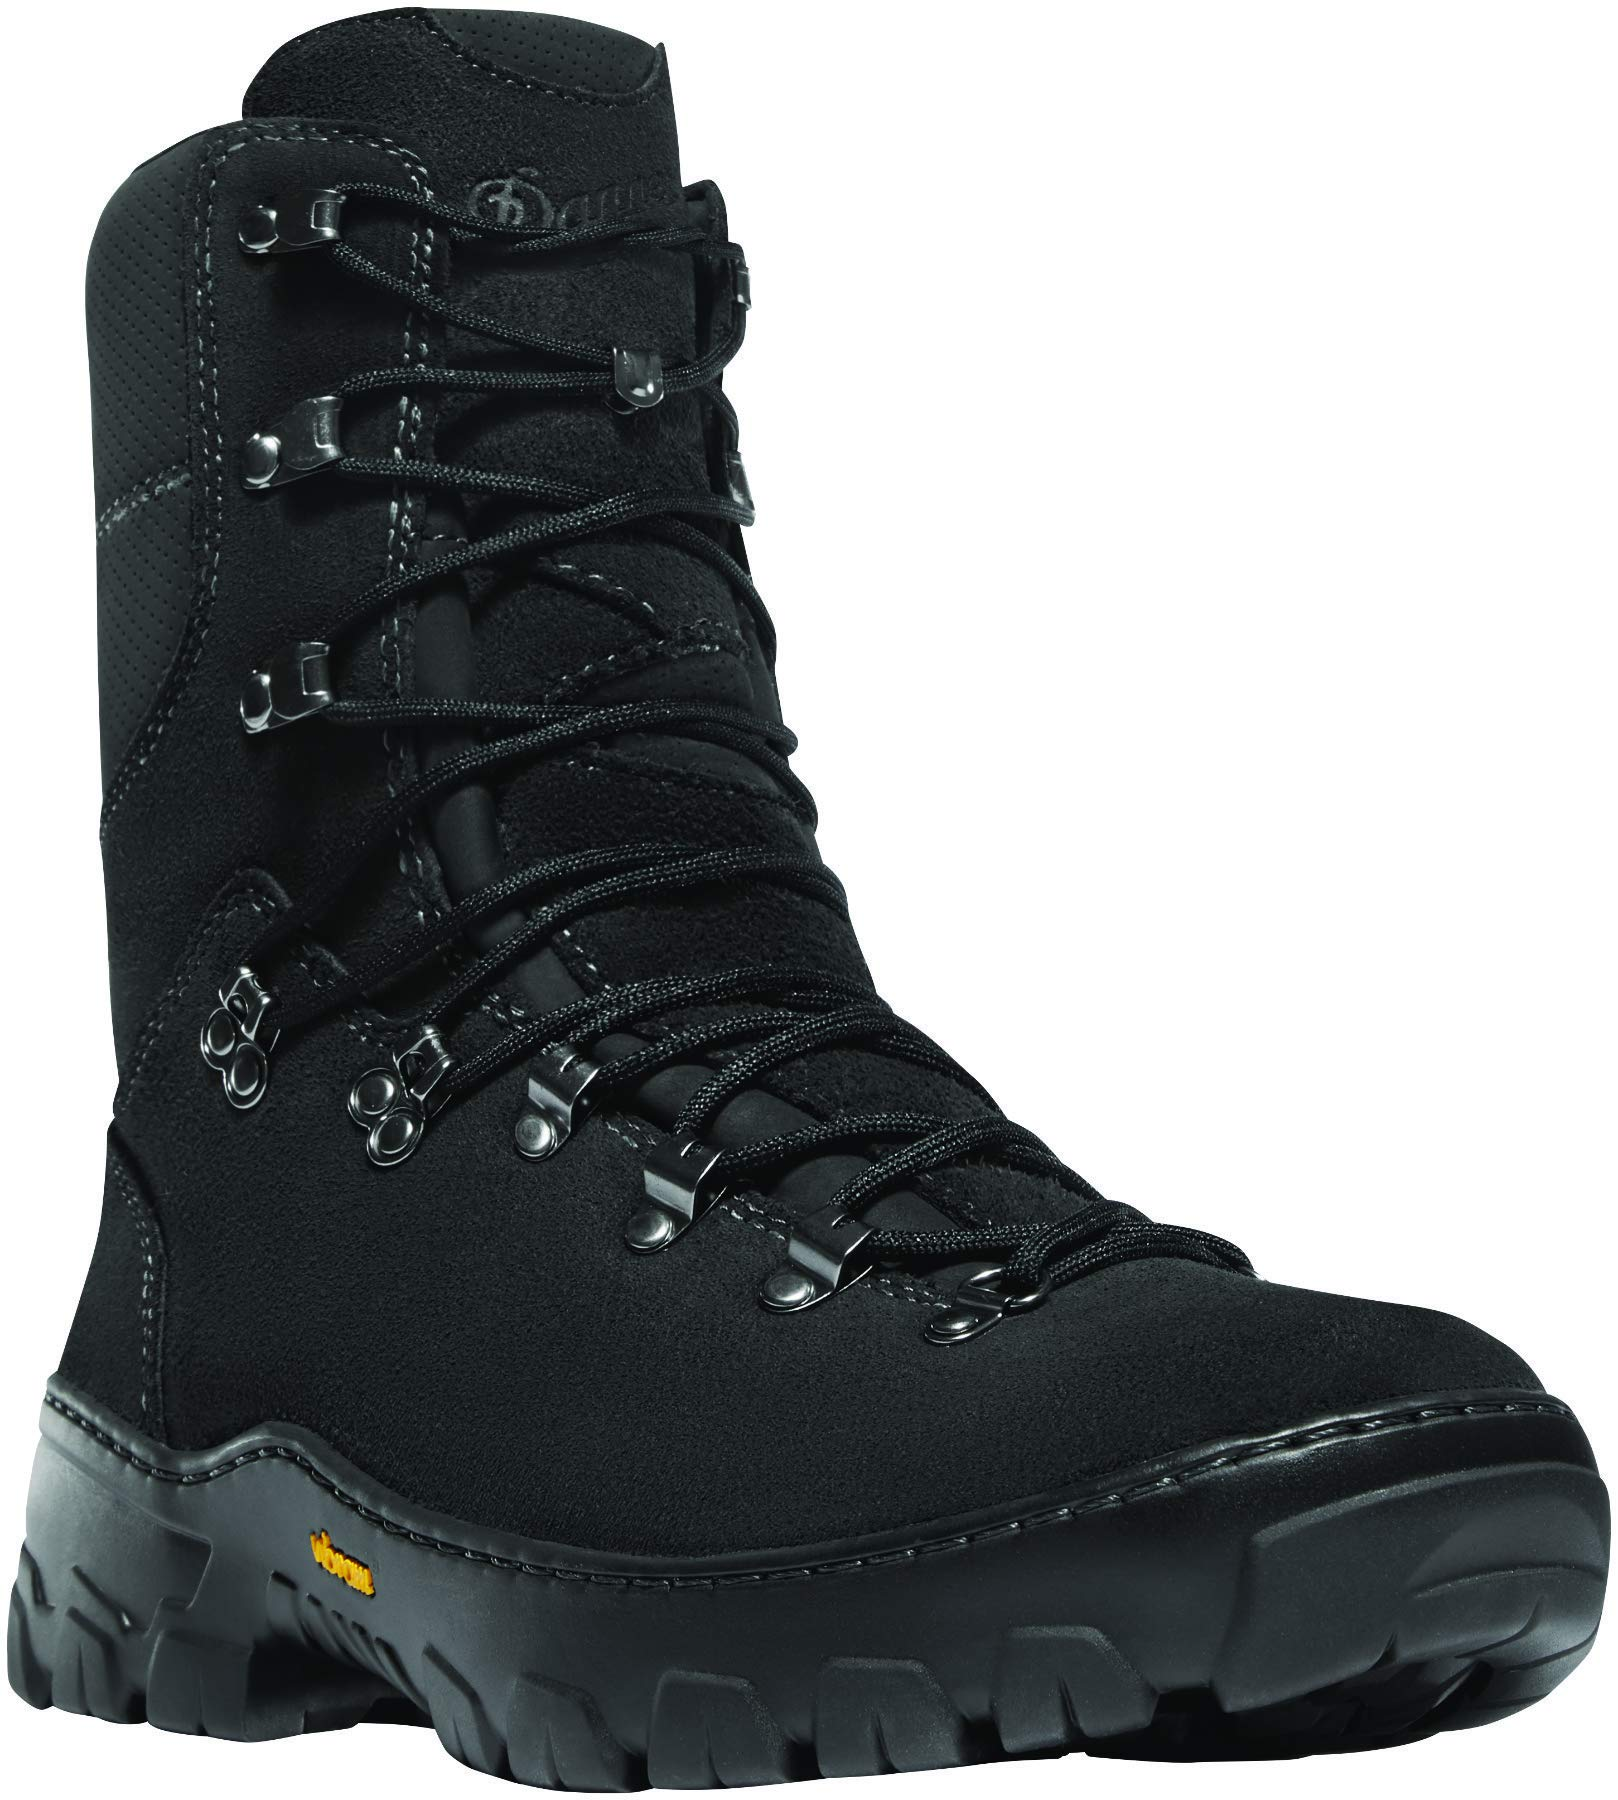 Danner Men's 18050 Wildland Tactical Firefighter 8'' Fire and Safety Boot, Black - 11 by Danner